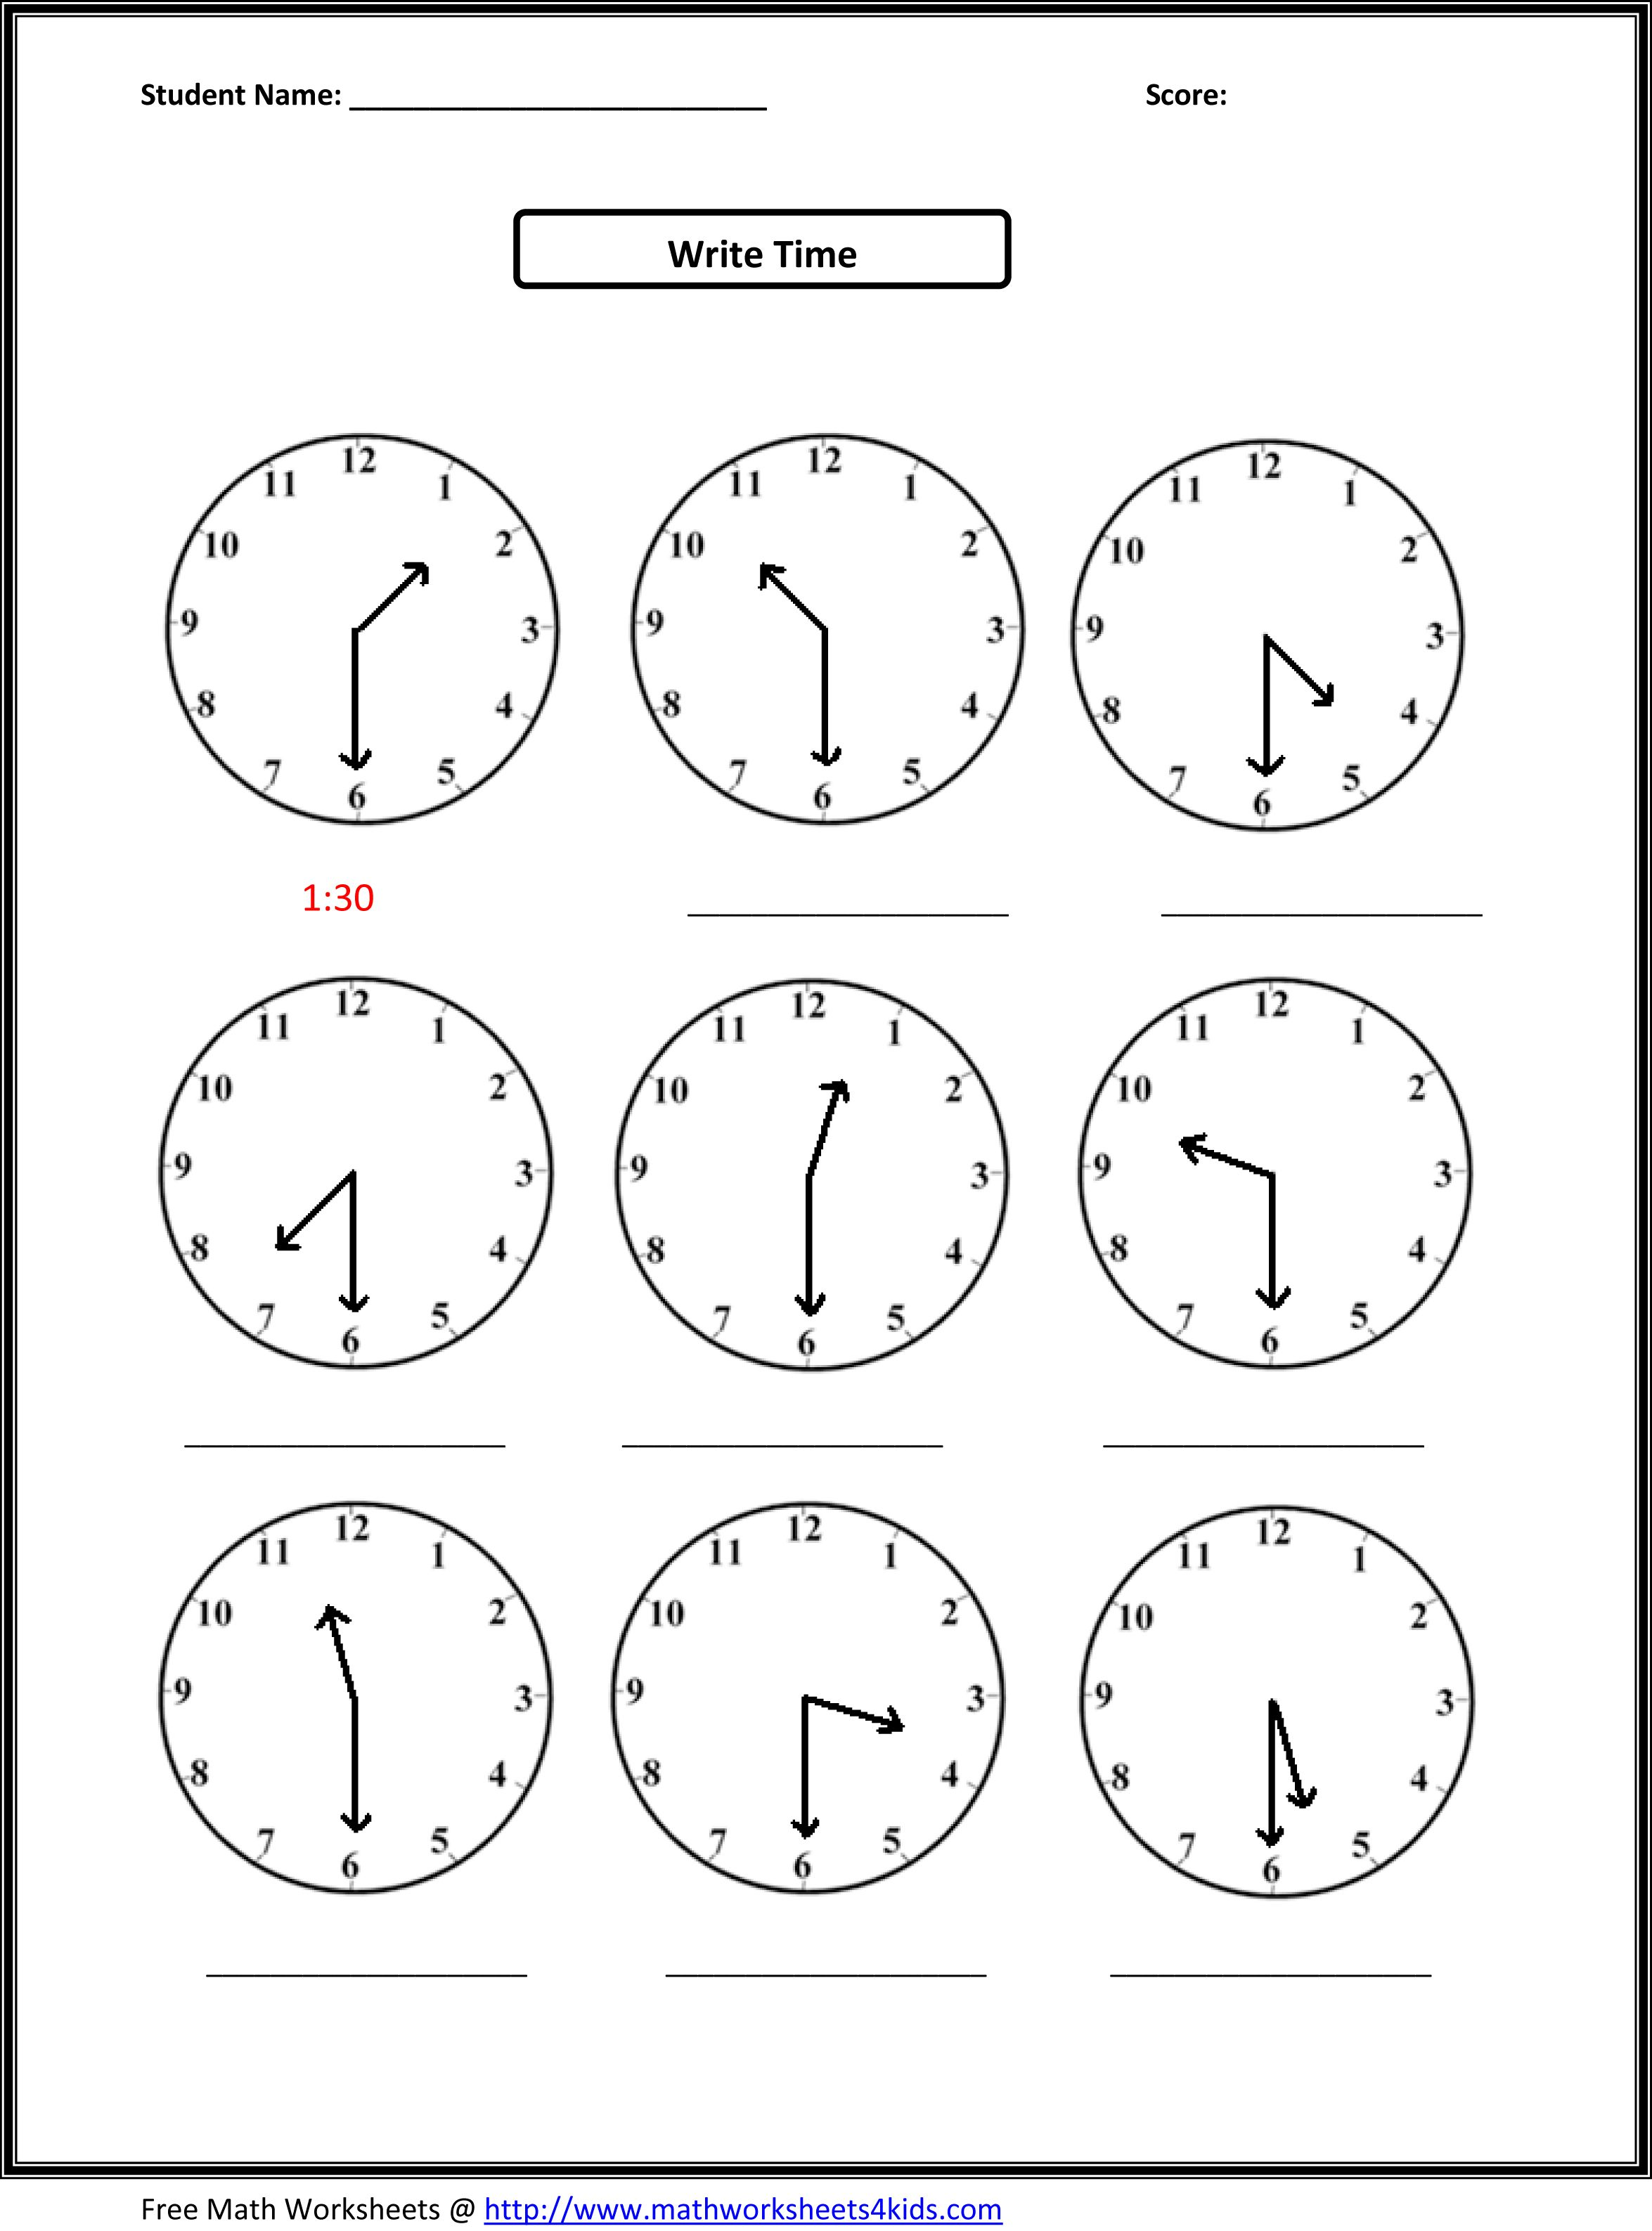 Proatmealus  Pleasant Worksheet On Time For Grade   Reocurent With Entrancing Free Printable Telling Time Worksheets Nd Grade  Reocurent With Charming Punctuation Commas Worksheets Also Mode Median Mean Worksheet In Addition Personal Pronouns Worksheet For Grade  And Decimal Practice Worksheet As Well As Sentences Worksheets For Nd Grade Additionally Fun Maths Worksheets Ks From Reocurentcom With Proatmealus  Entrancing Worksheet On Time For Grade   Reocurent With Charming Free Printable Telling Time Worksheets Nd Grade  Reocurent And Pleasant Punctuation Commas Worksheets Also Mode Median Mean Worksheet In Addition Personal Pronouns Worksheet For Grade  From Reocurentcom